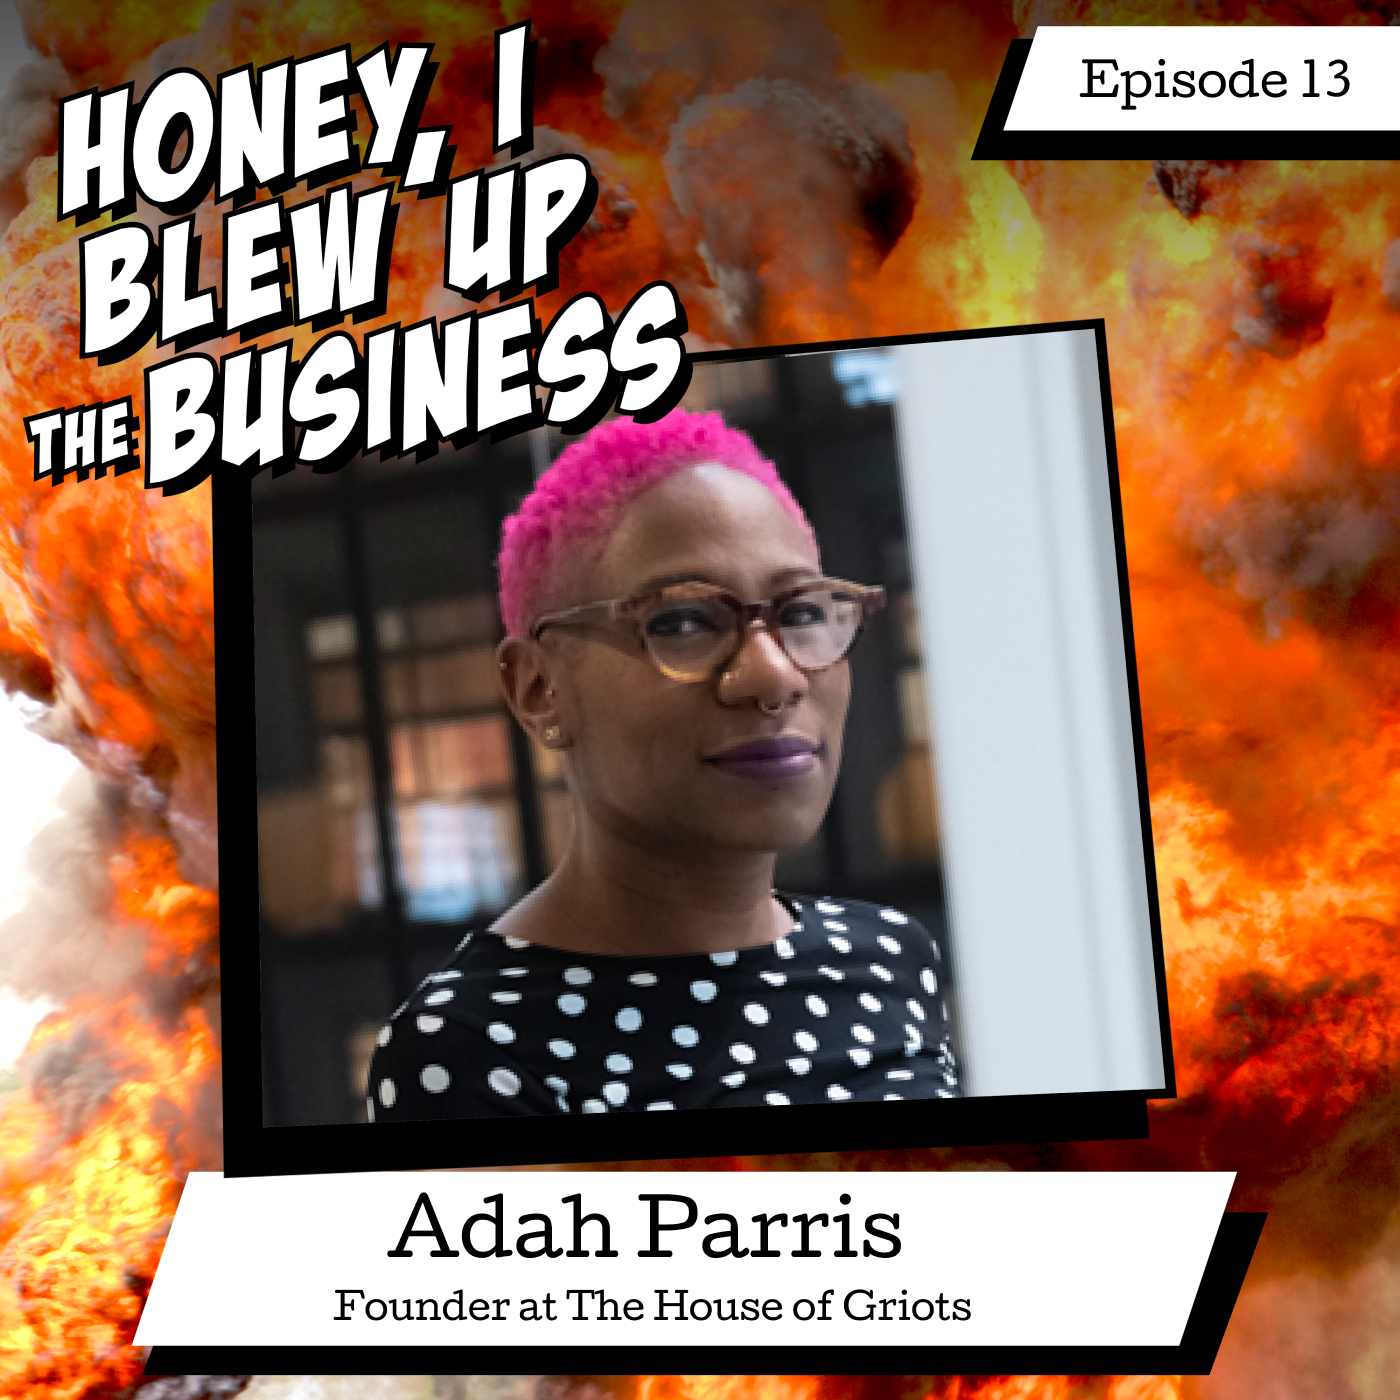 In this episode of Honey I Blew Up The Business, Dan is joined by Adah Parris, an entrepreneur and artist. We talk about reinventing our careers...but